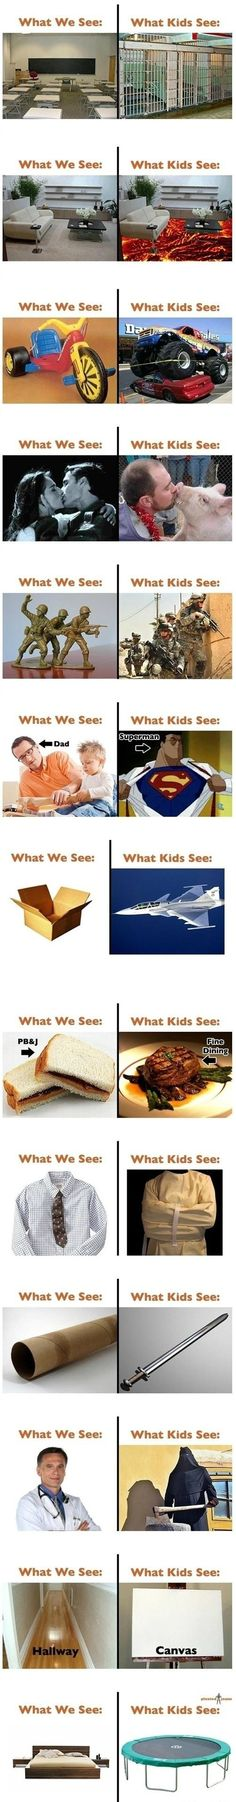 i still view some of these the same as when I was young the second one is the most accurate